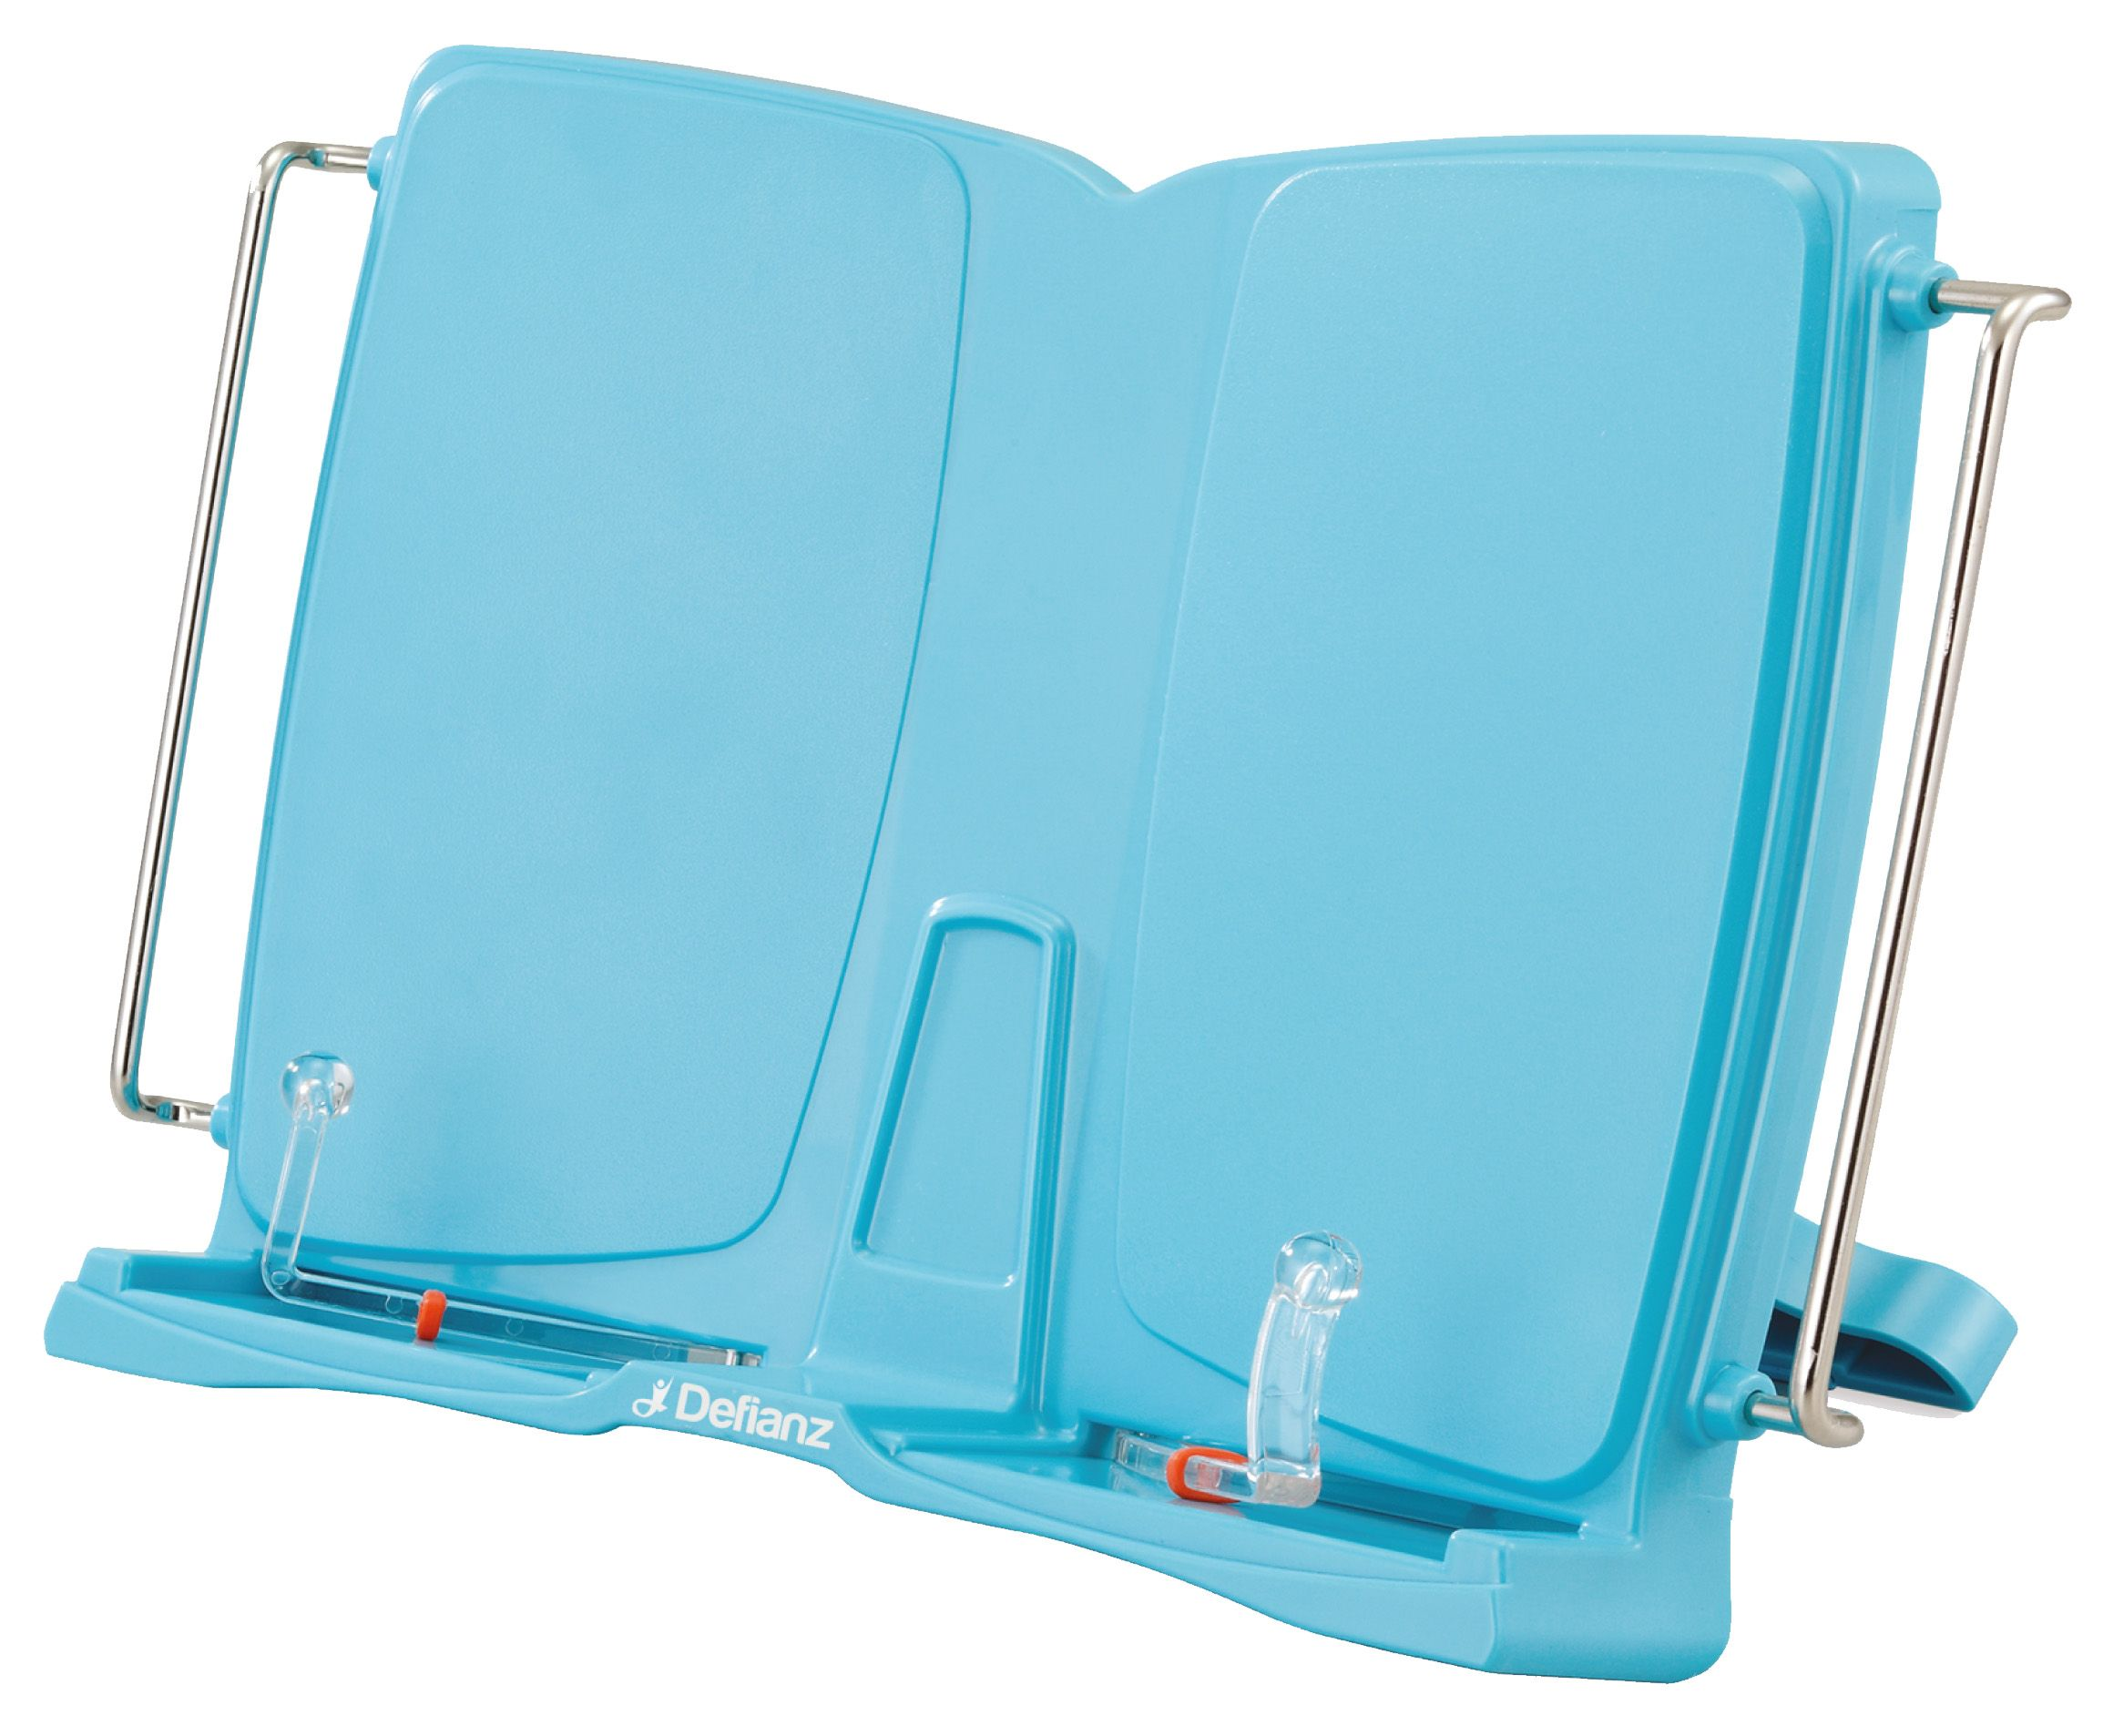 rid of the wrist pain and enjoy hands free reading with the